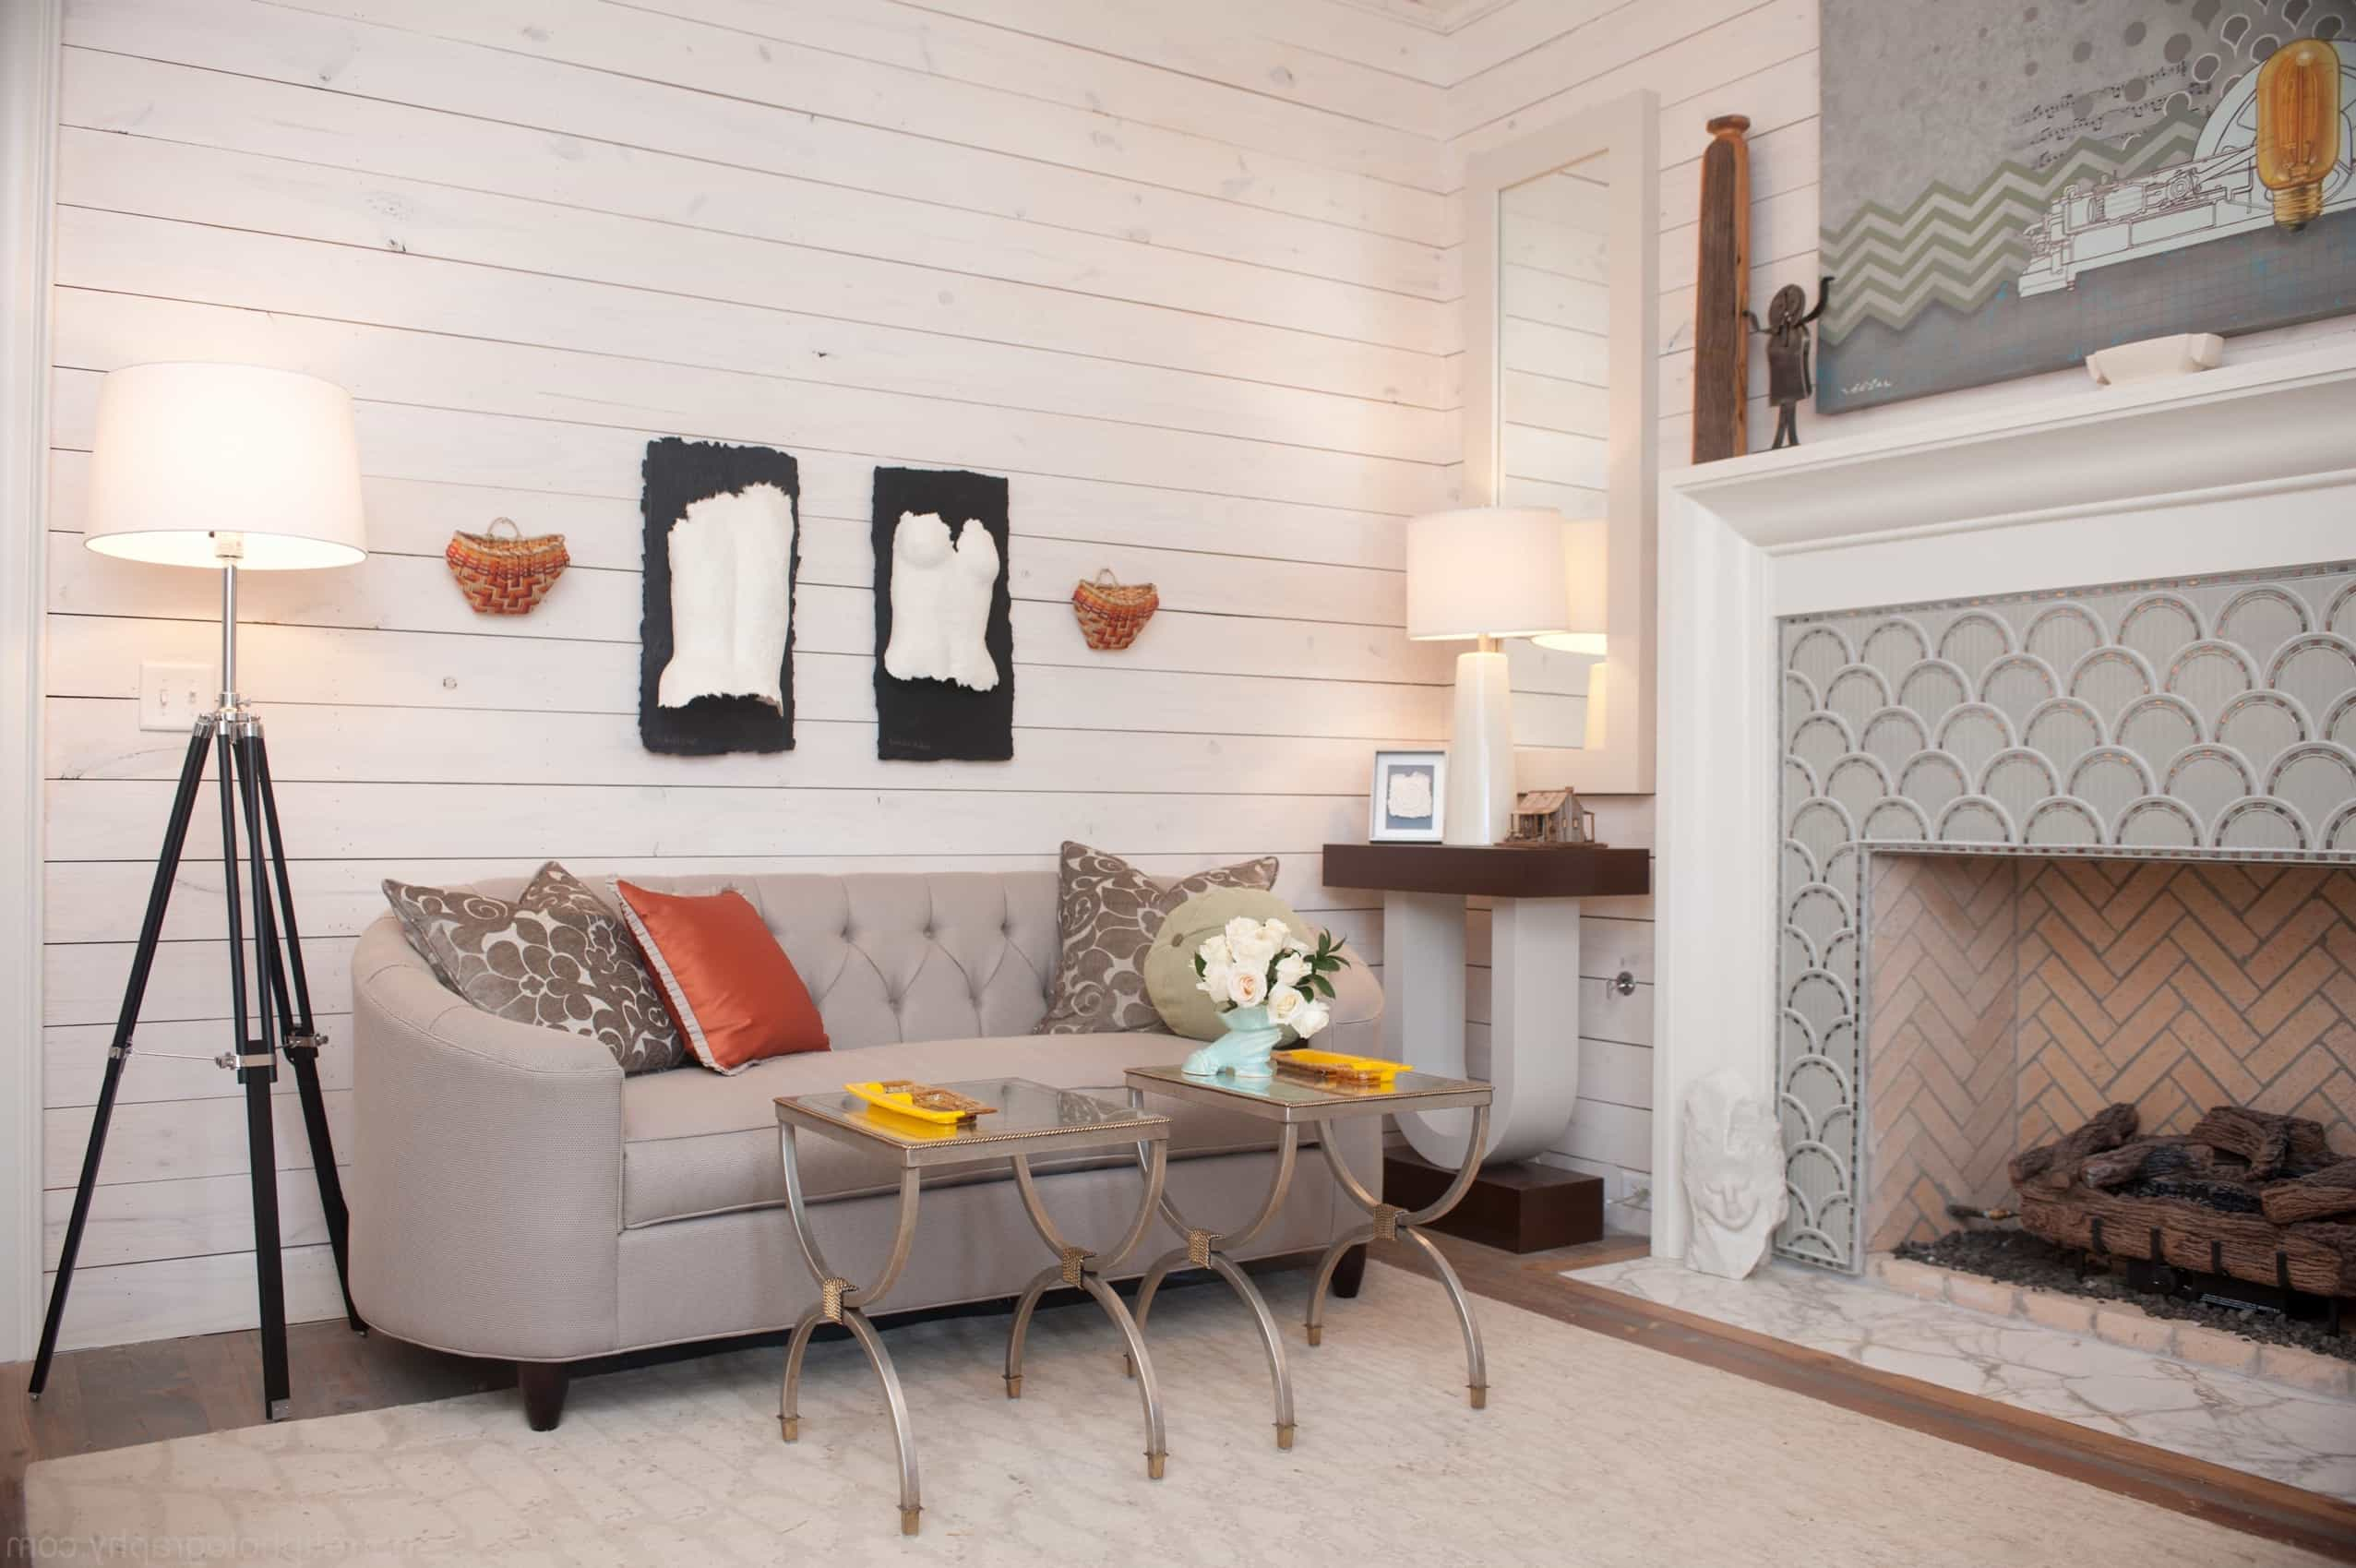 Featured Image of Neutral Wood Paneled Craftsman Sitting Room With Elegant Sofa